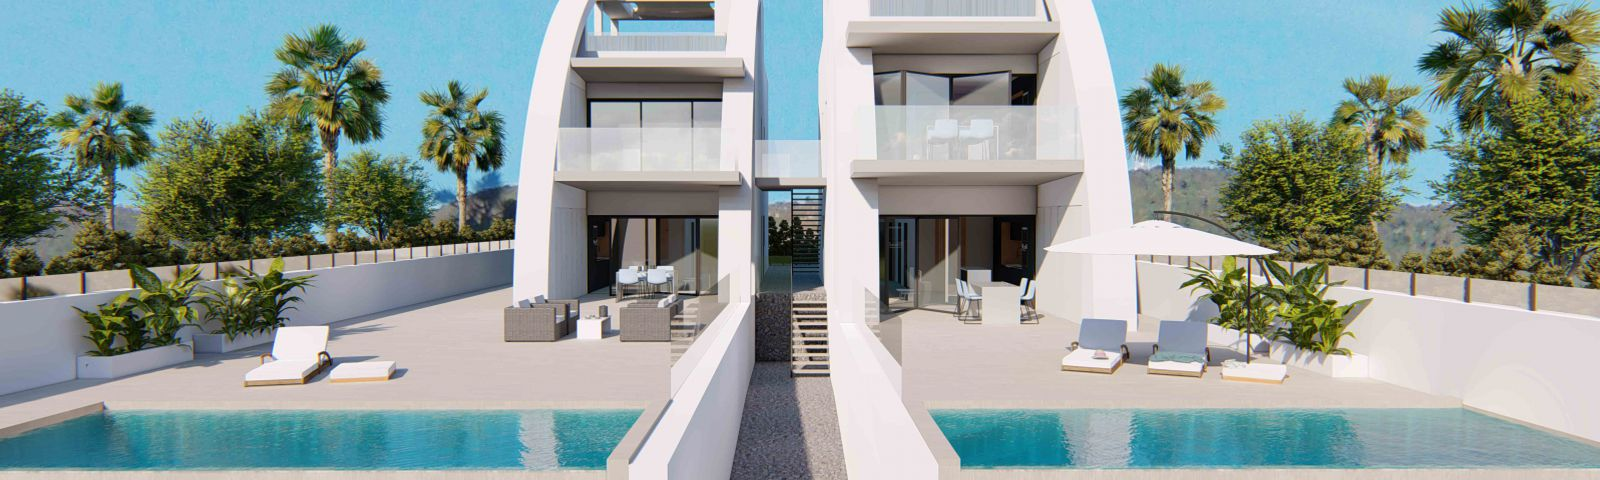 Apartment - New Build - Rojales - Quesada City